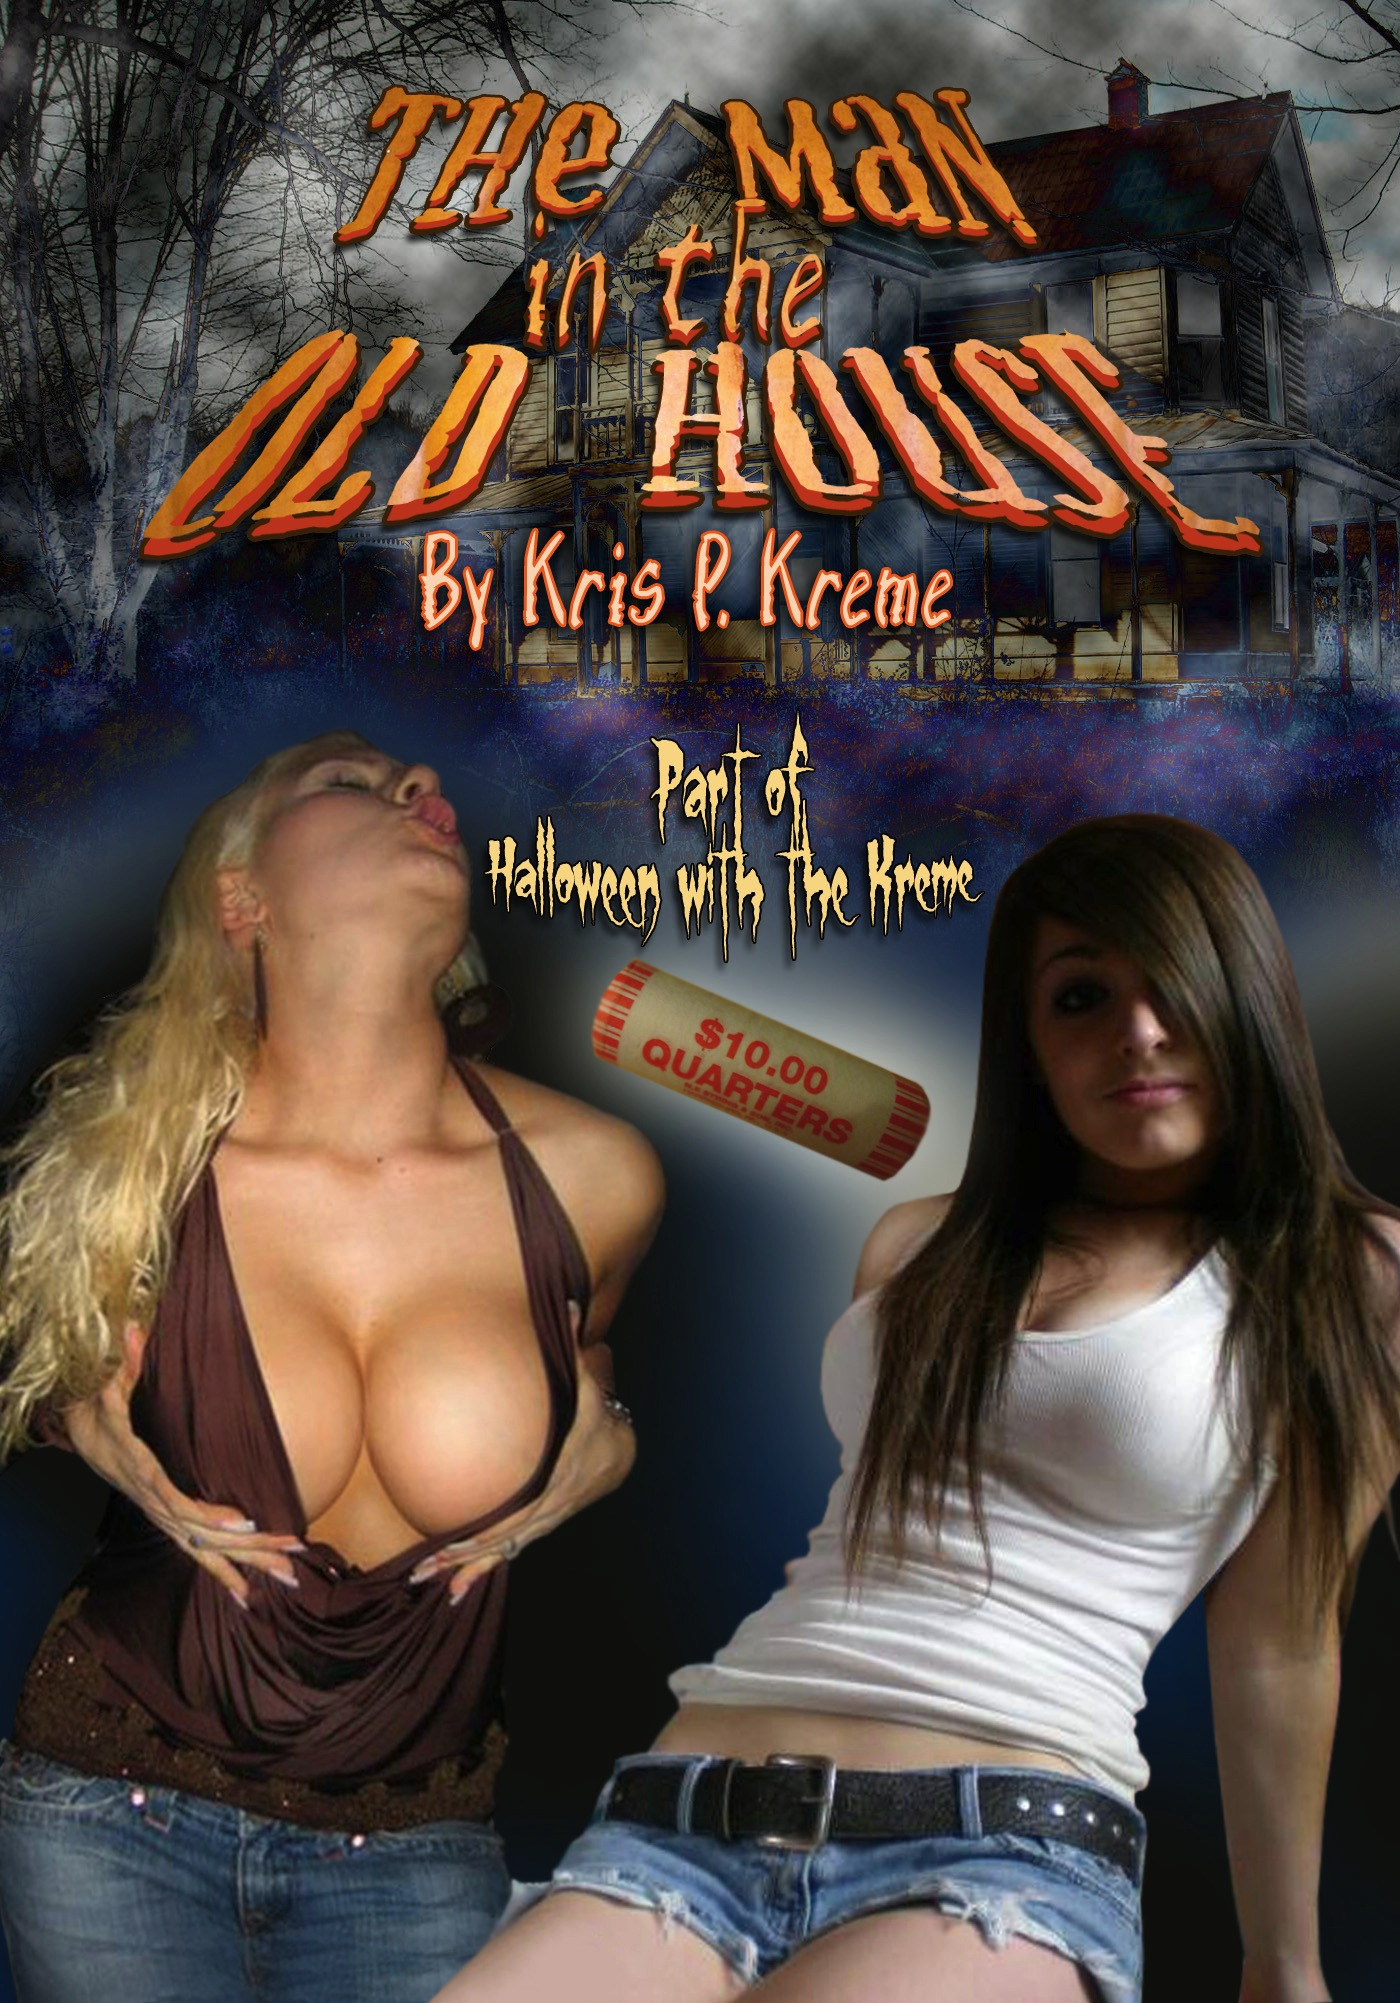 The Man in the Old House by Kris P. Kreme